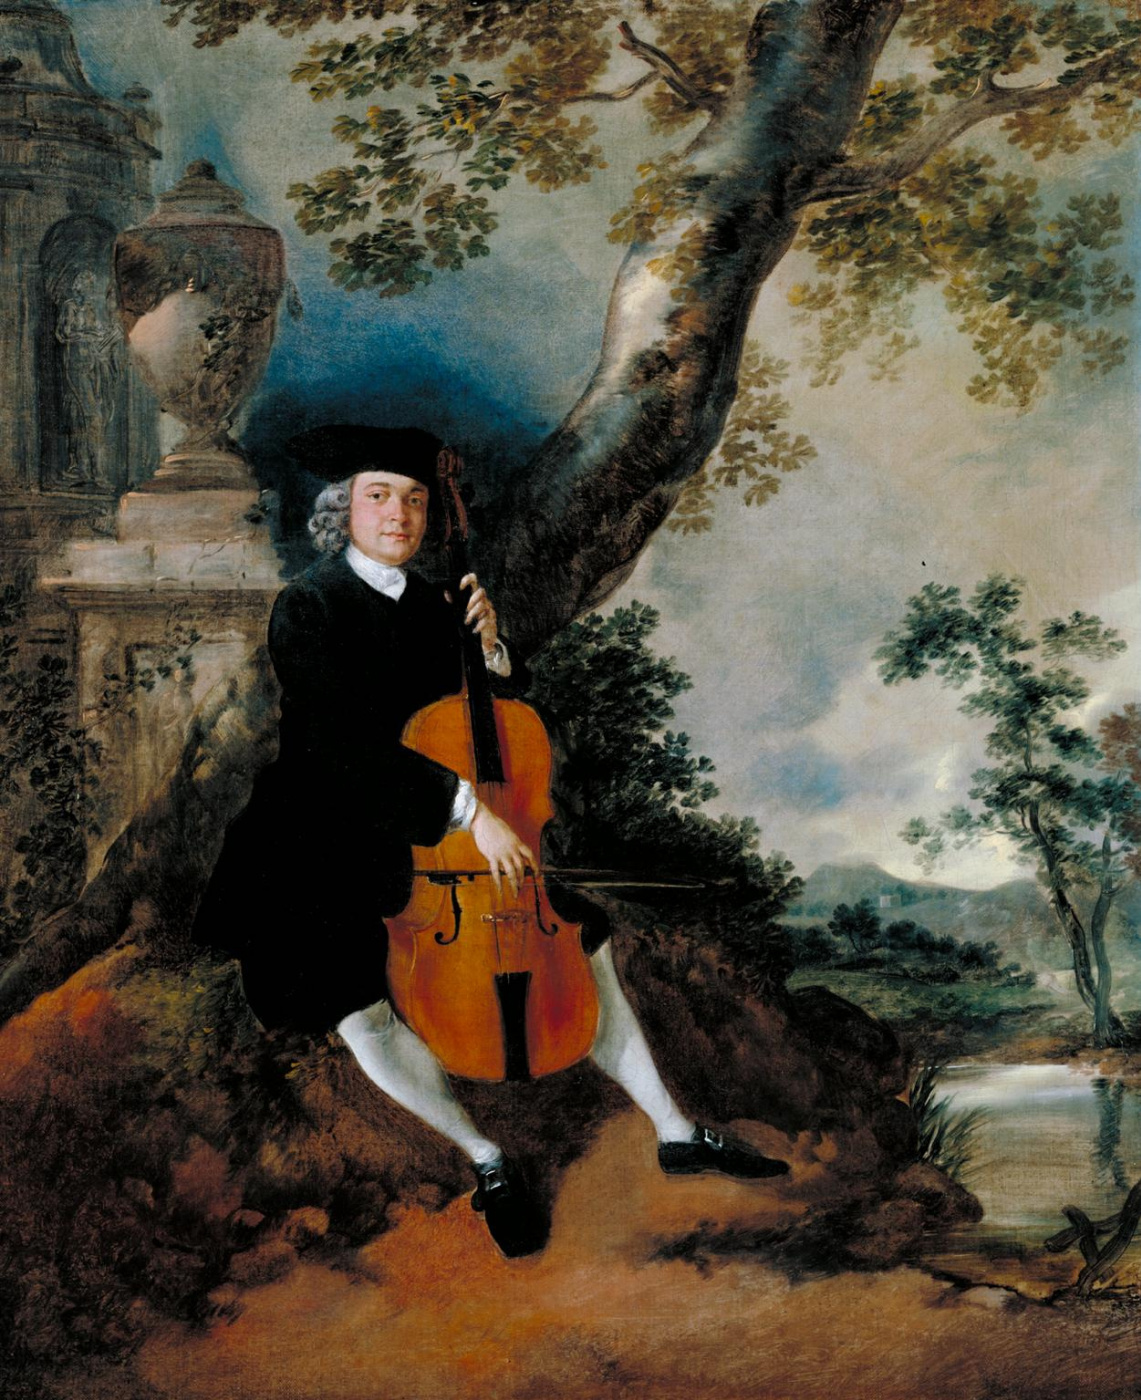 Thomas Gainsborough. Reverend John Chafee, who plays the cello, in a landscape